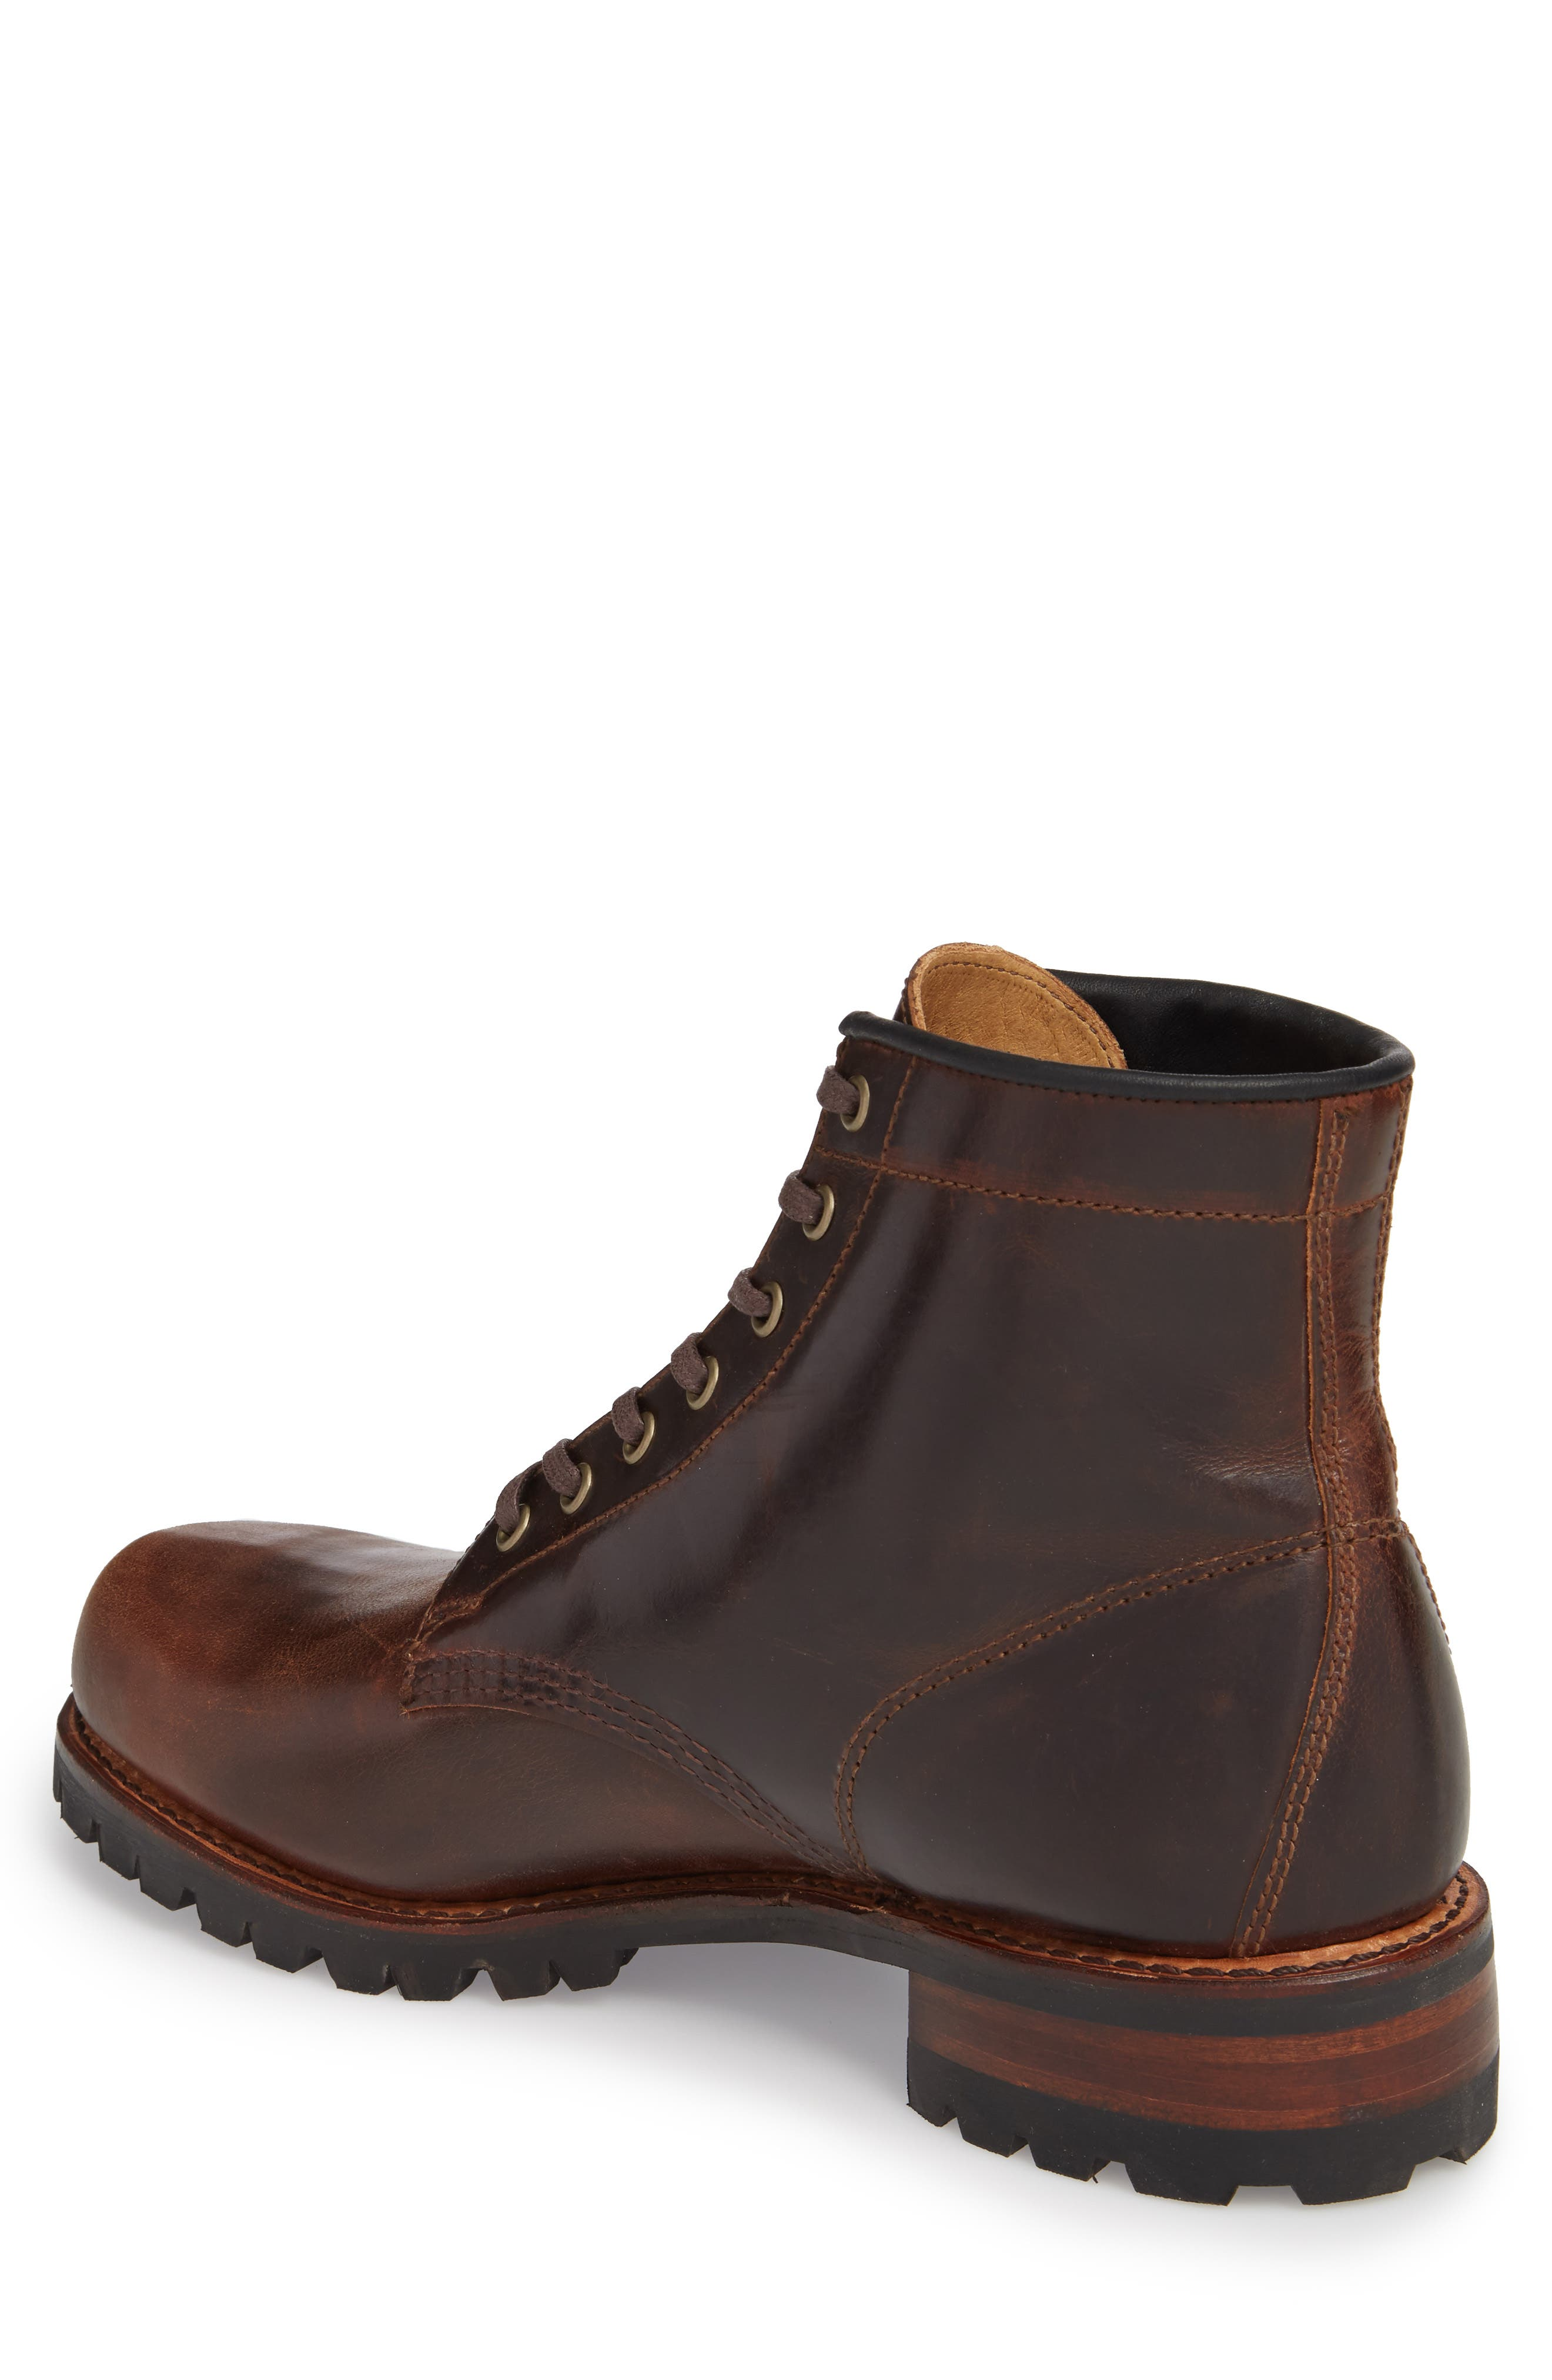 Addison Lace-Up Boot,                             Alternate thumbnail 2, color,                             Dark Brown Leather